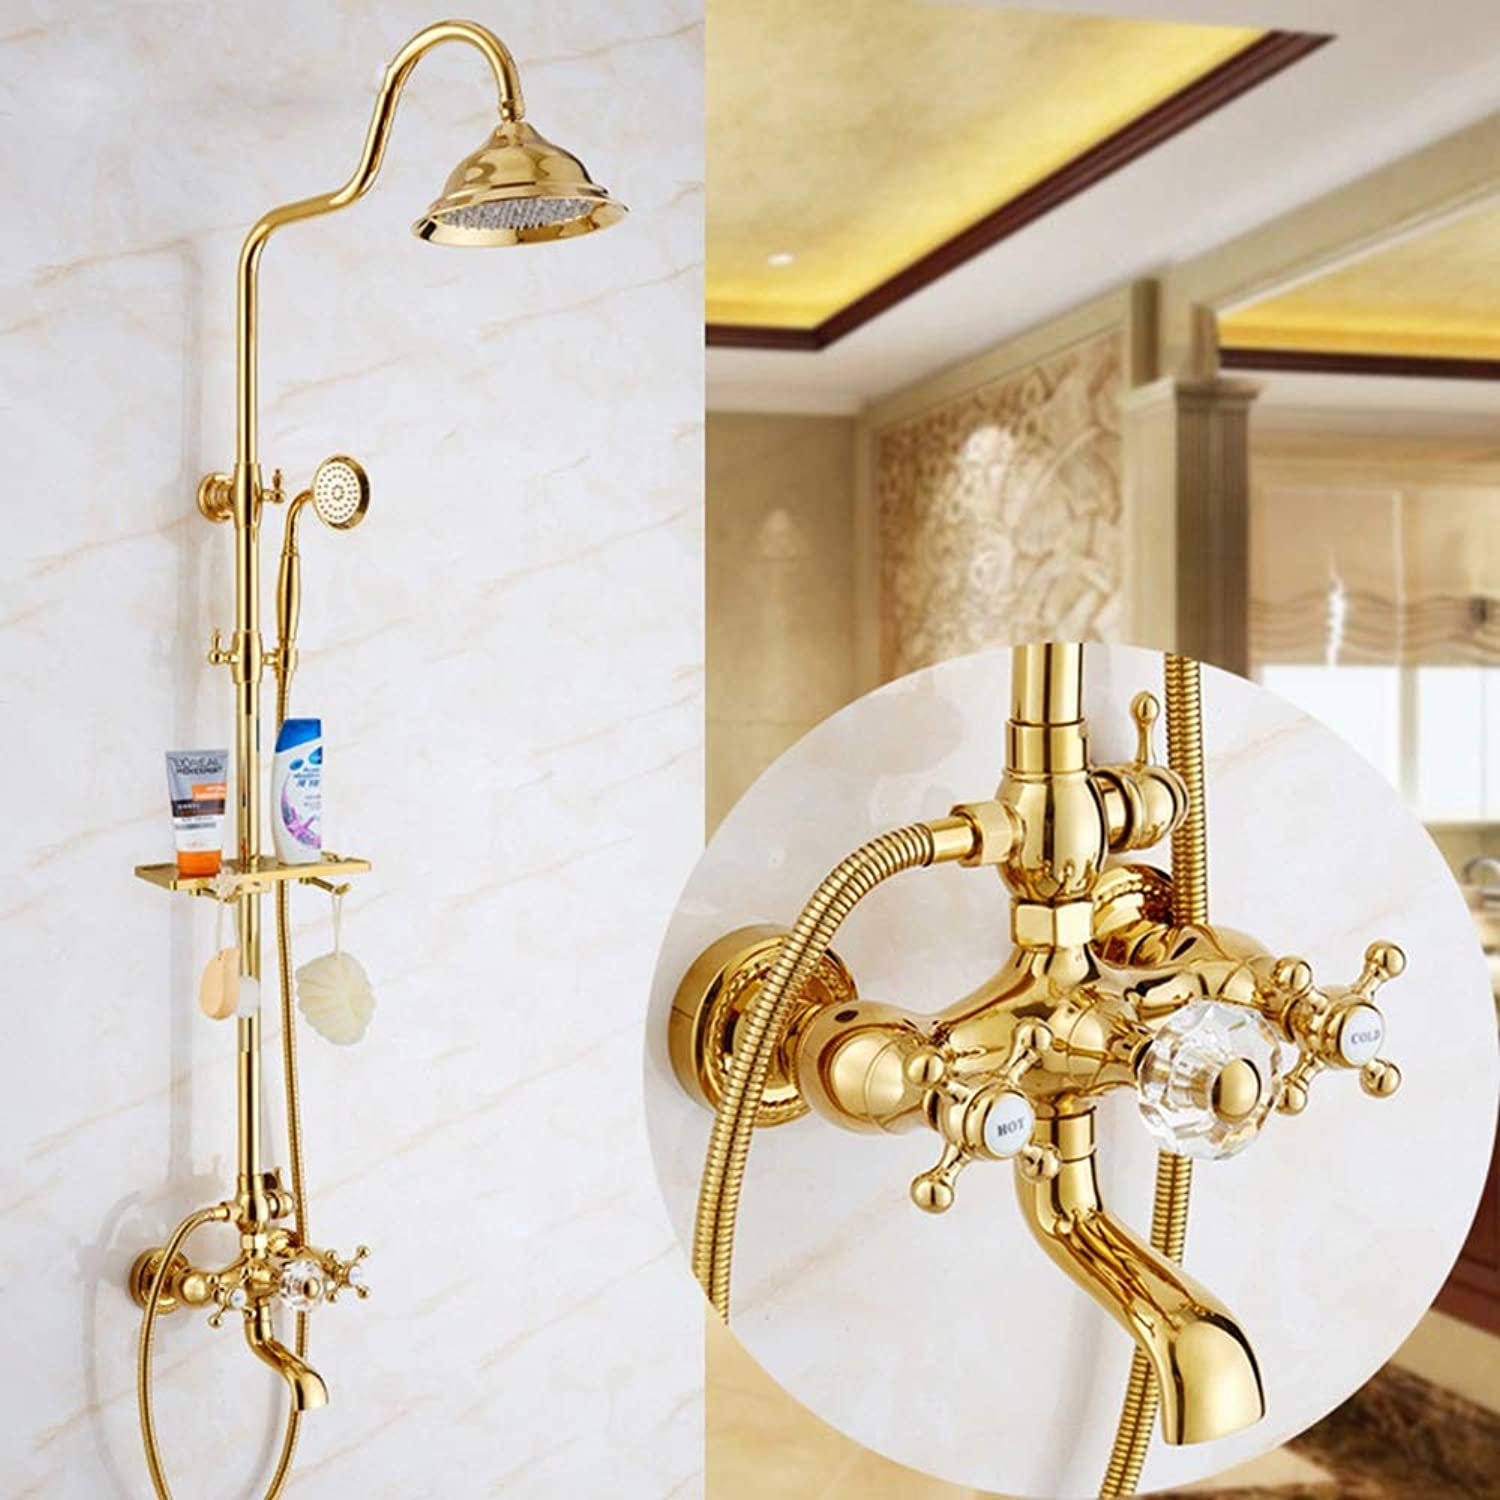 HYH Shower Faucet Set Upscale European Copper Shower gold Seven-way Crystal Ball Shower Shower Head good life